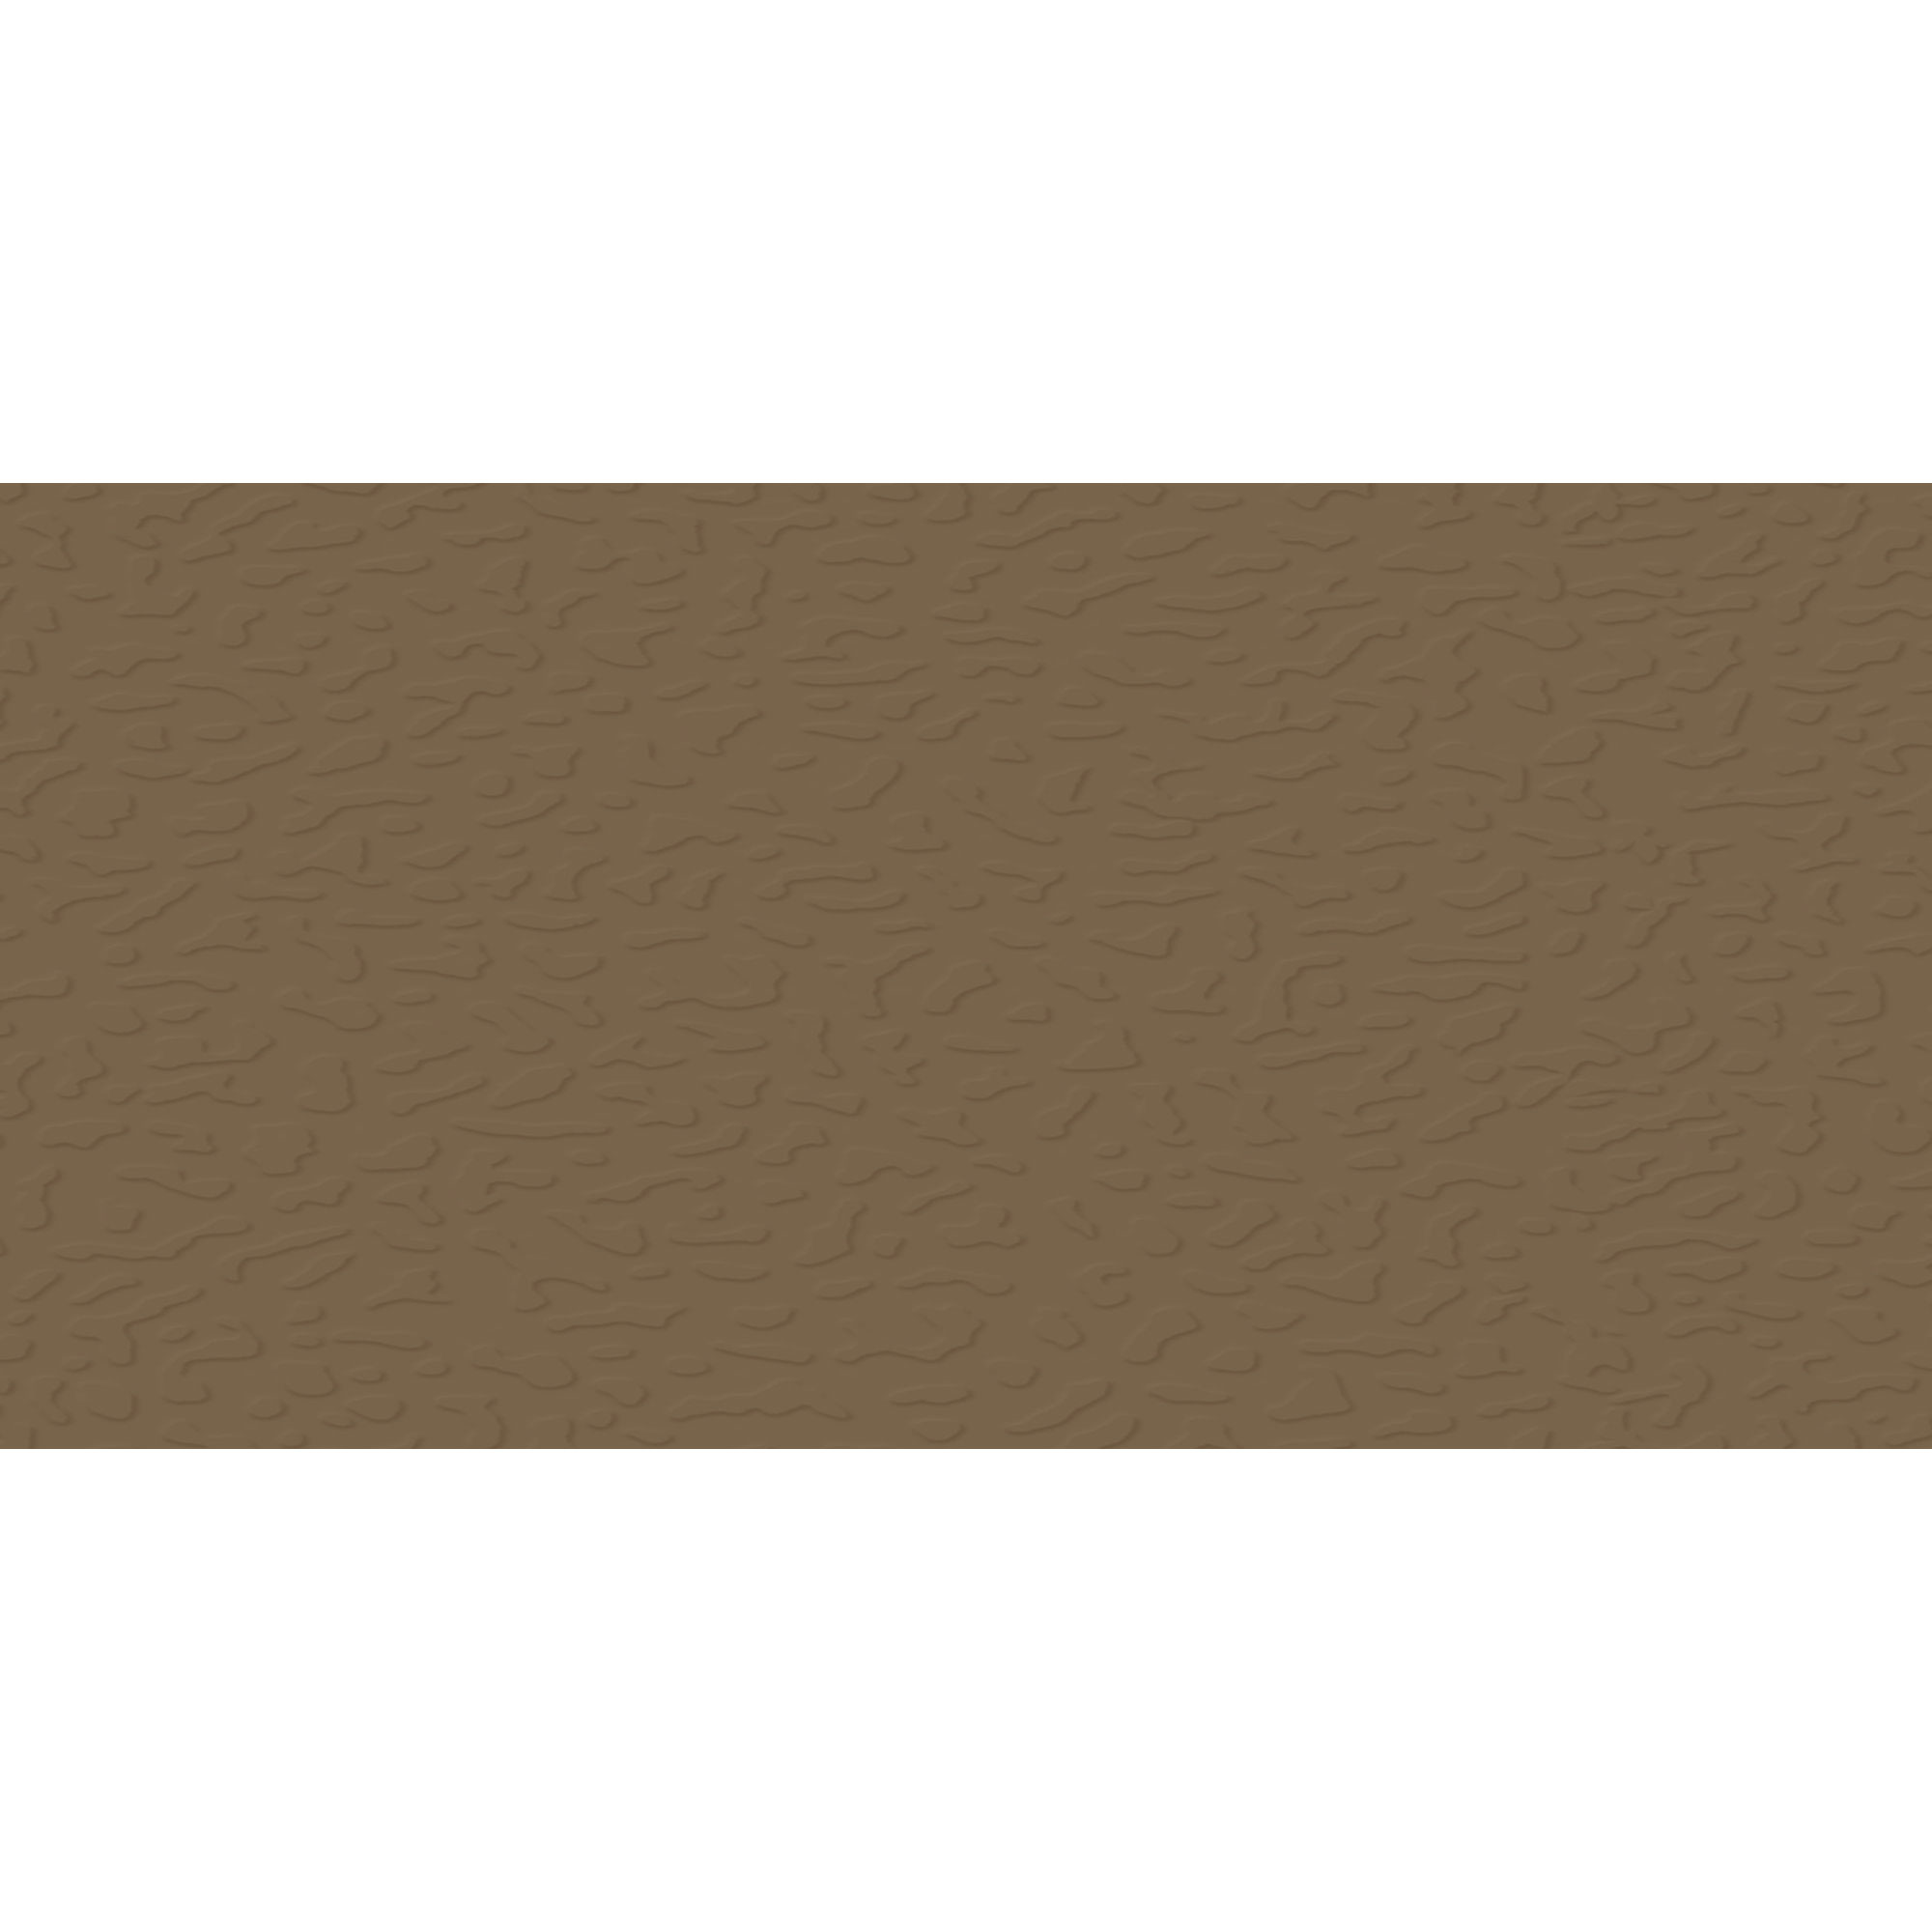 Roppe Designers Choice Textured 6 x 12 Chameleon